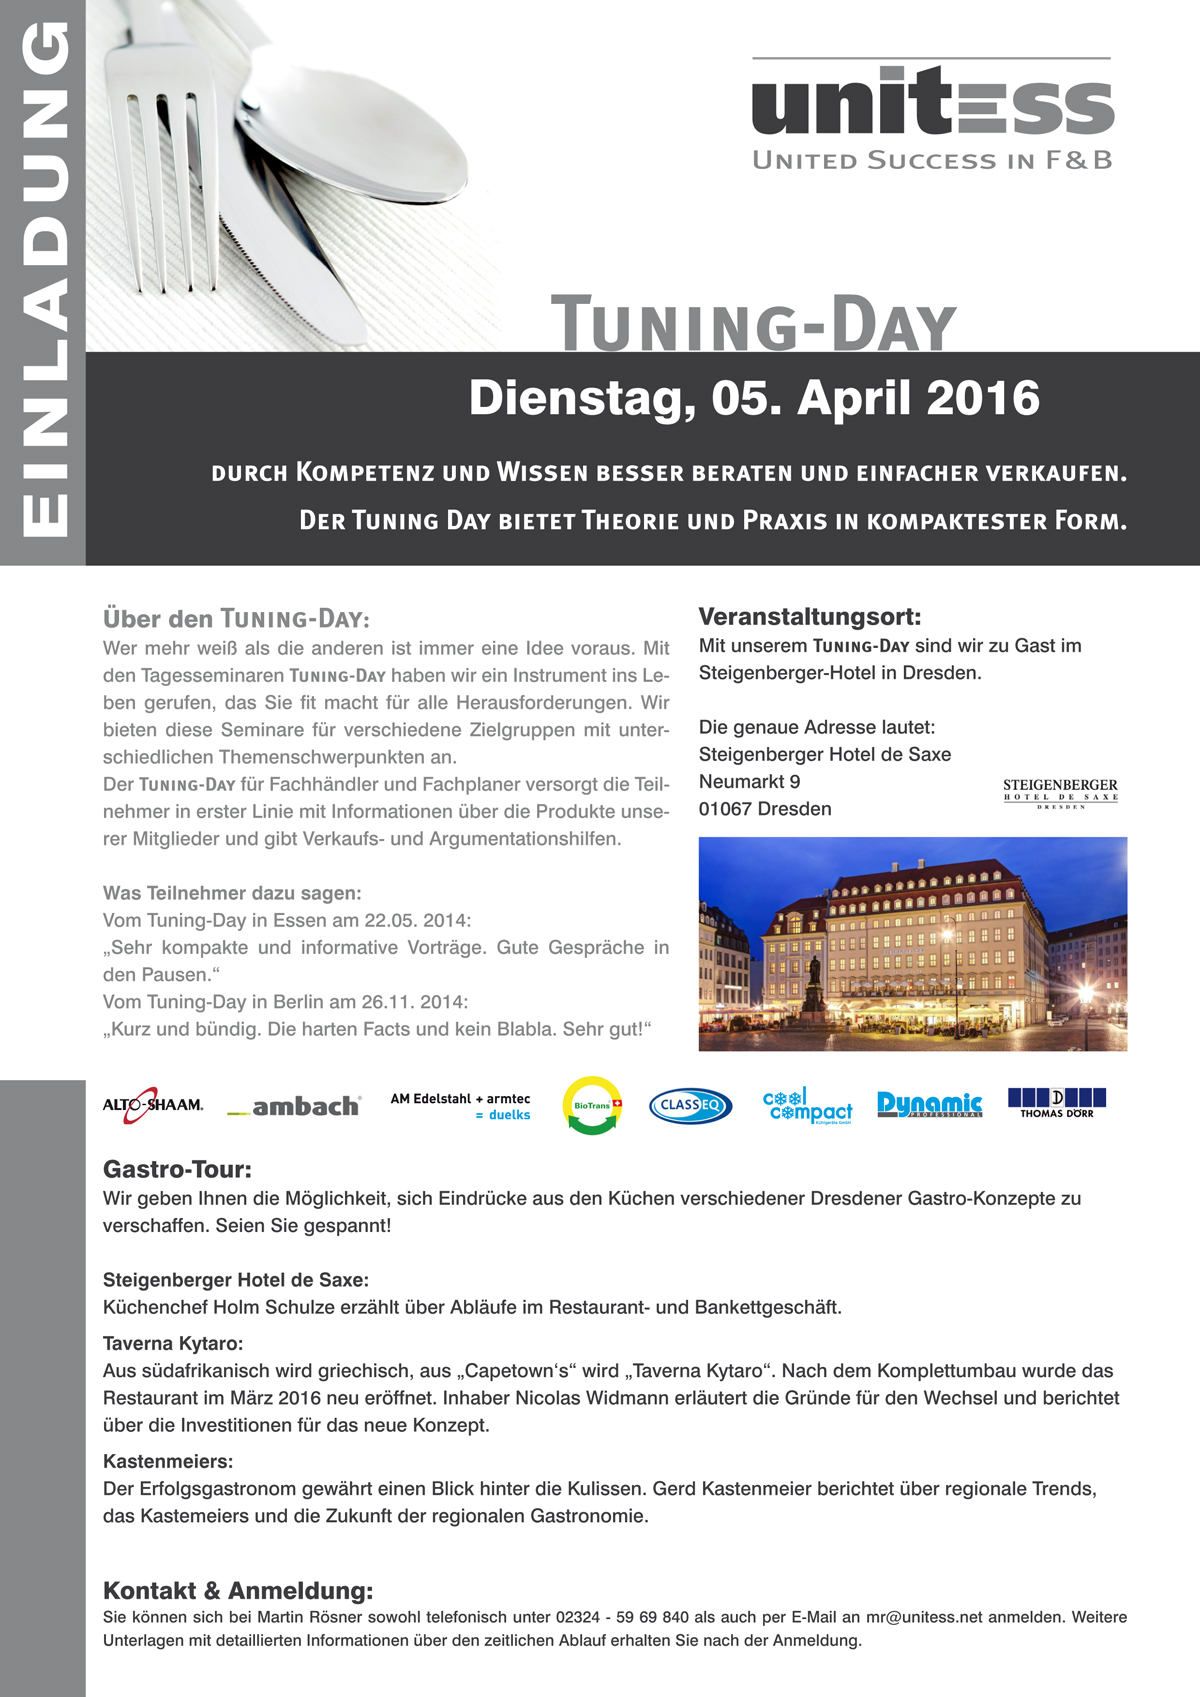 Unitess Einladung Tuning-Day 2016 Dresden Print in Tuning-Day in Dresden